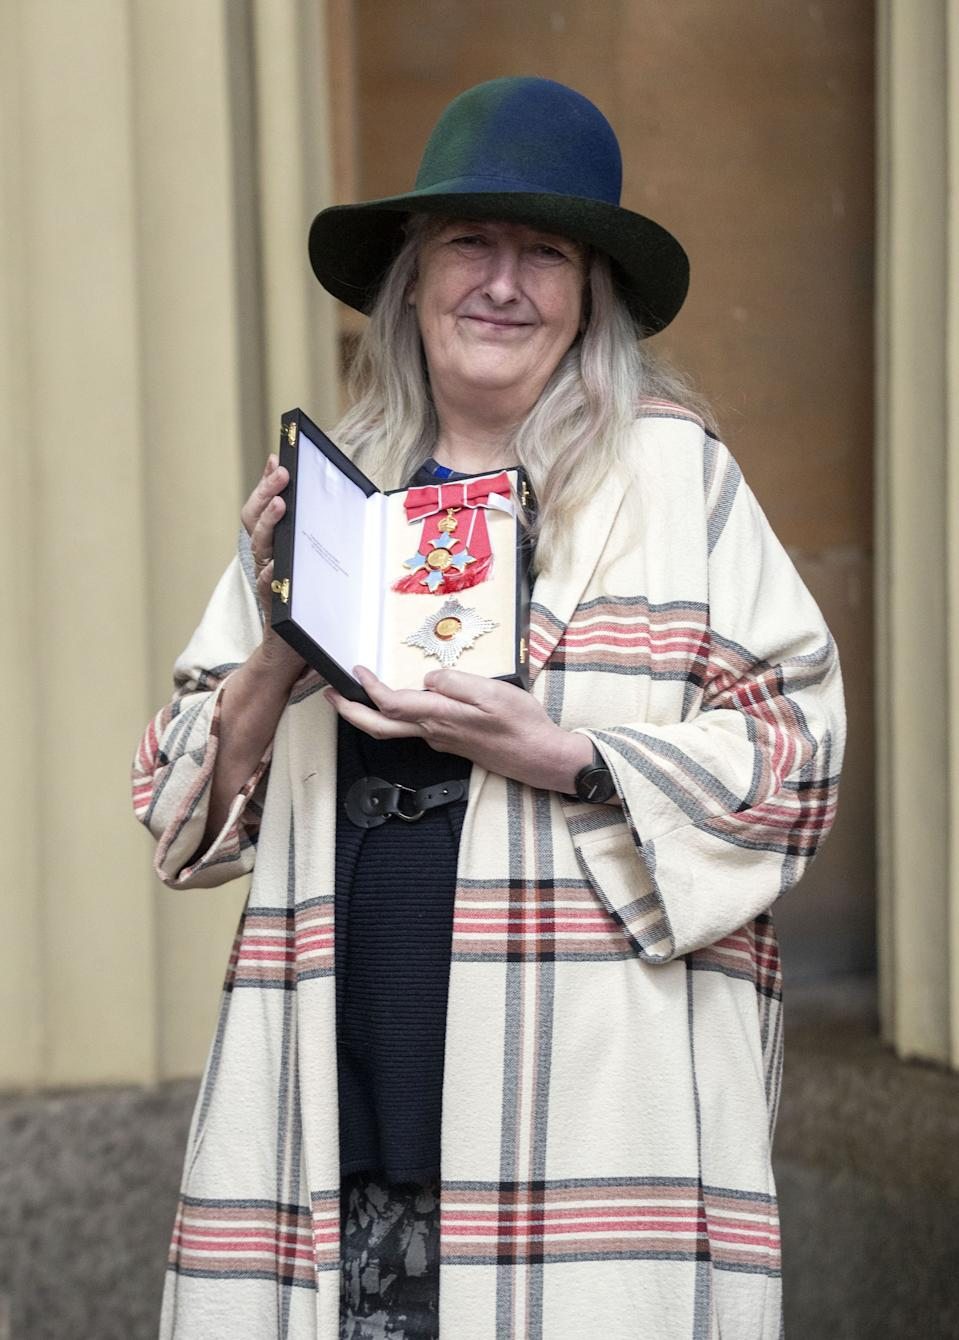 Mary Beard poses with her medal and insignia after she was appointed a Dame Commander of the Order of the British Empire (DBE) at an investiture ceremony at Buckingham Palace in London on December 7, 2018. (Photo by STEVE PARSONS / POOL / AFP via Getty Images)